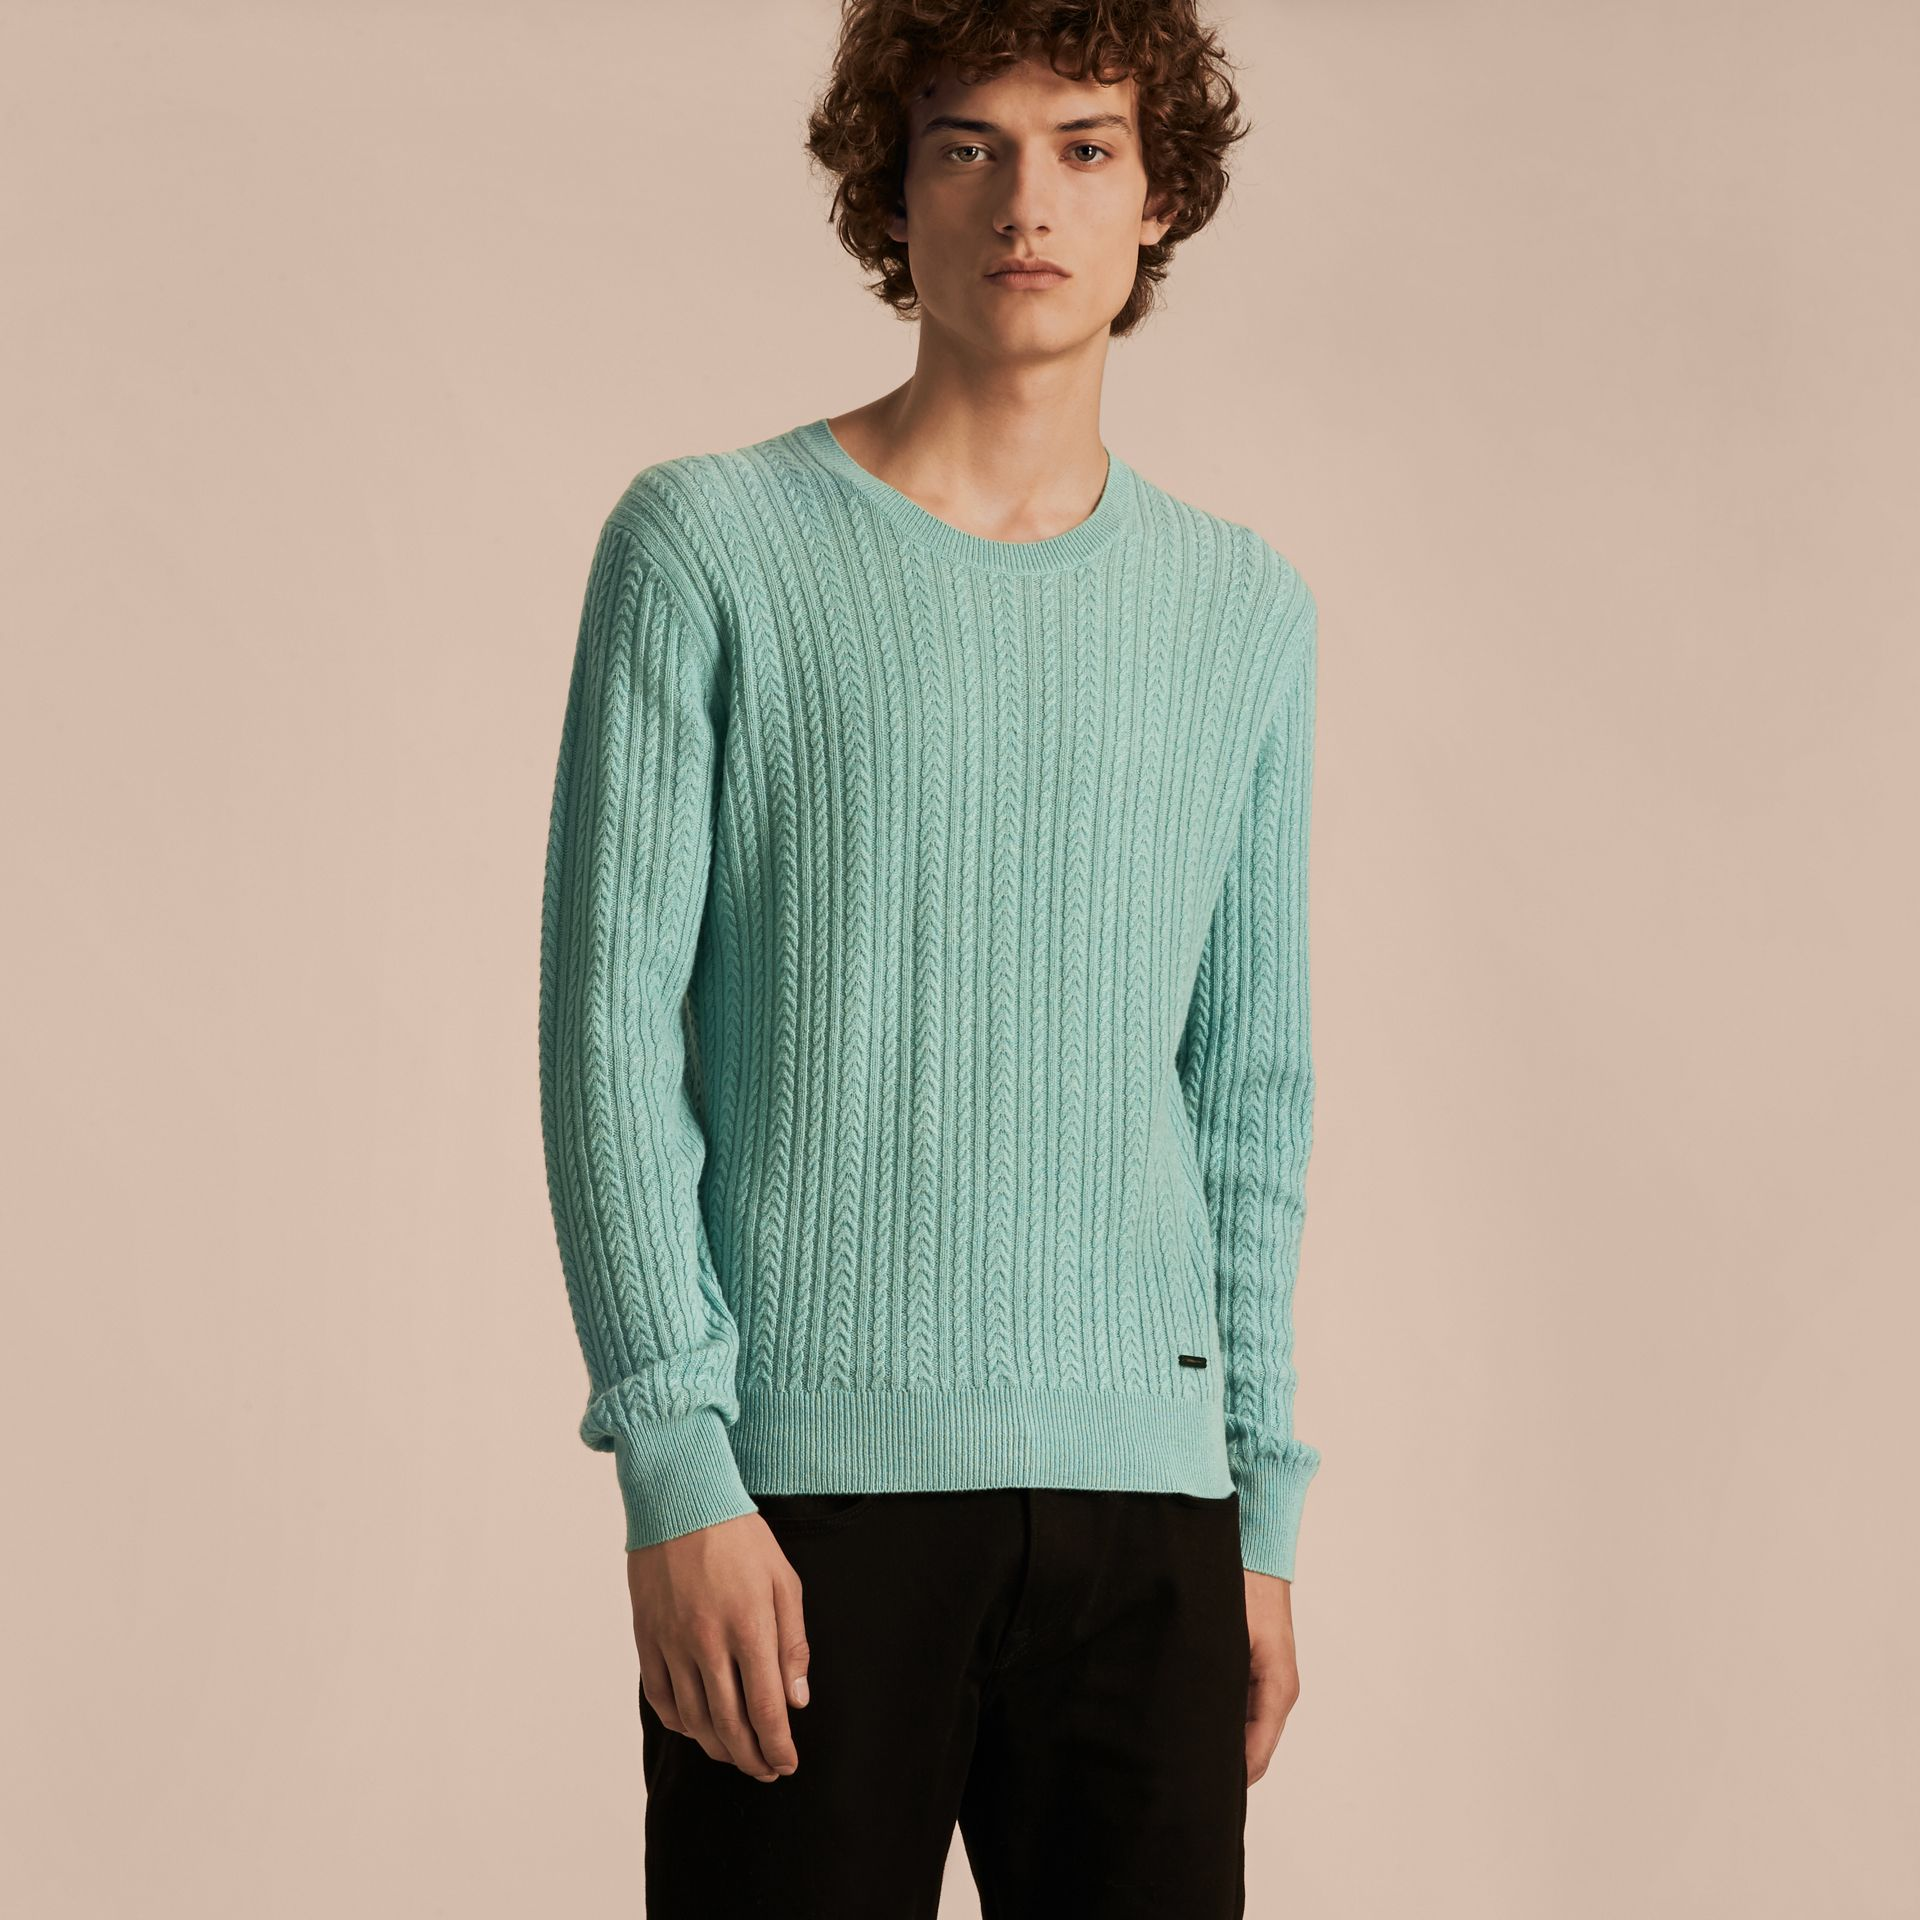 Pale peridot blue Aran Knit Cashmere Sweater Pale Peridot Blue - gallery image 6